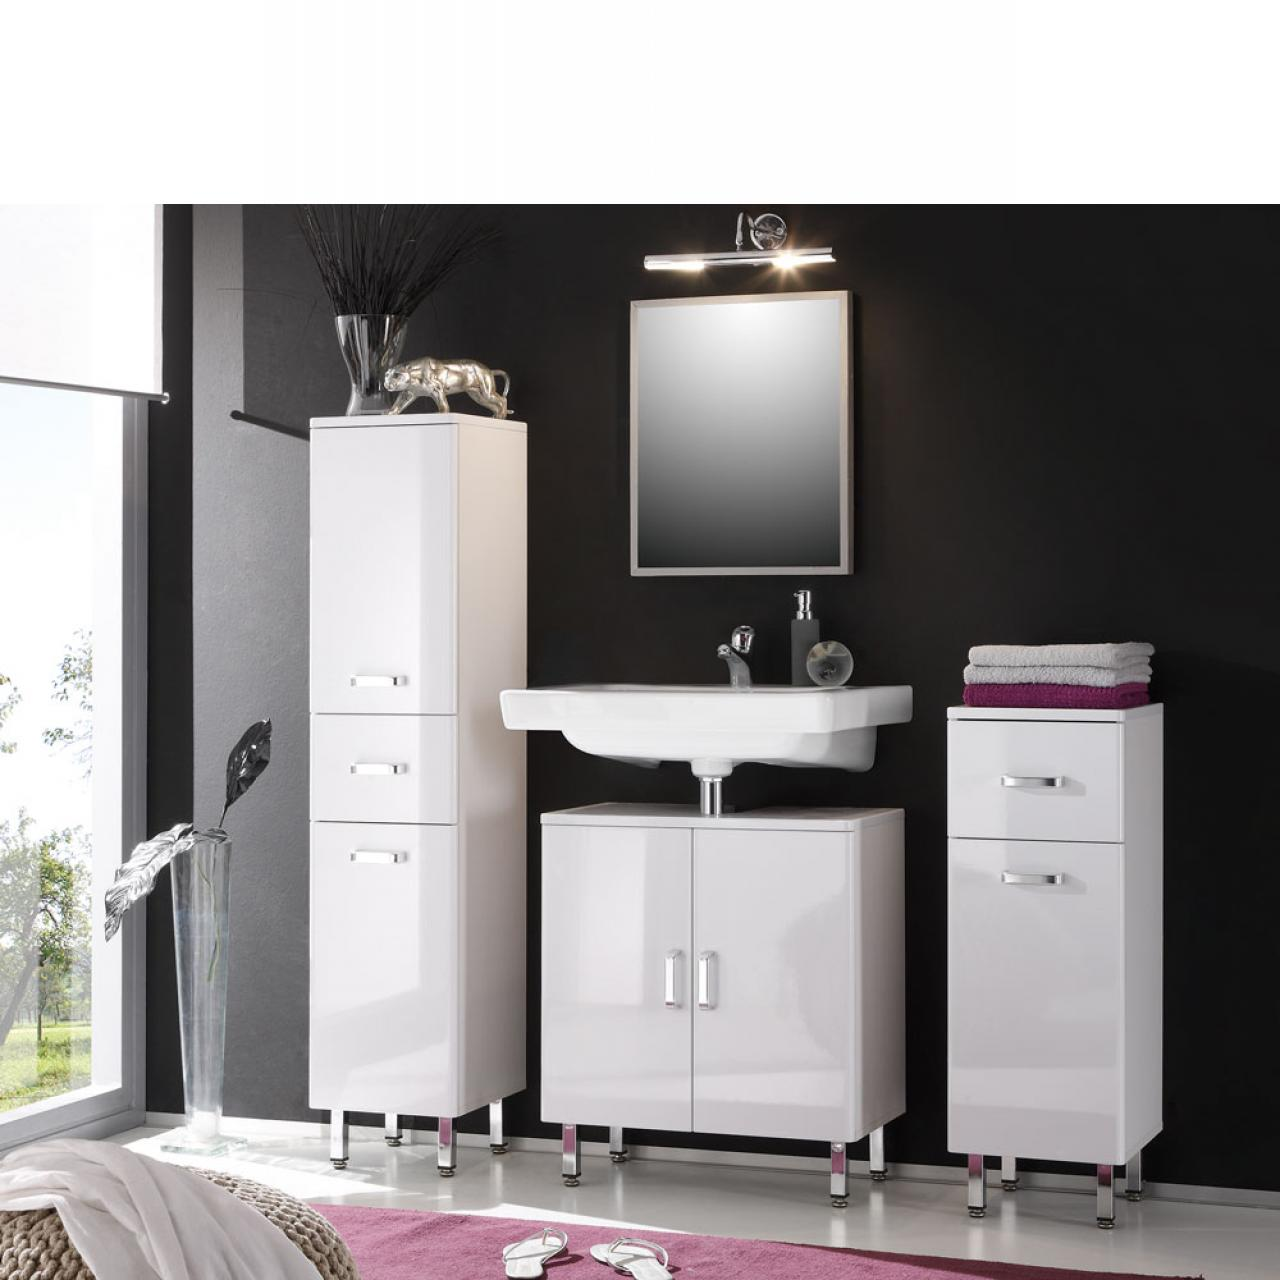 sideboard lift sideboards wohnzimmerm bel wohnen m bel j hnichen center gmbh. Black Bedroom Furniture Sets. Home Design Ideas